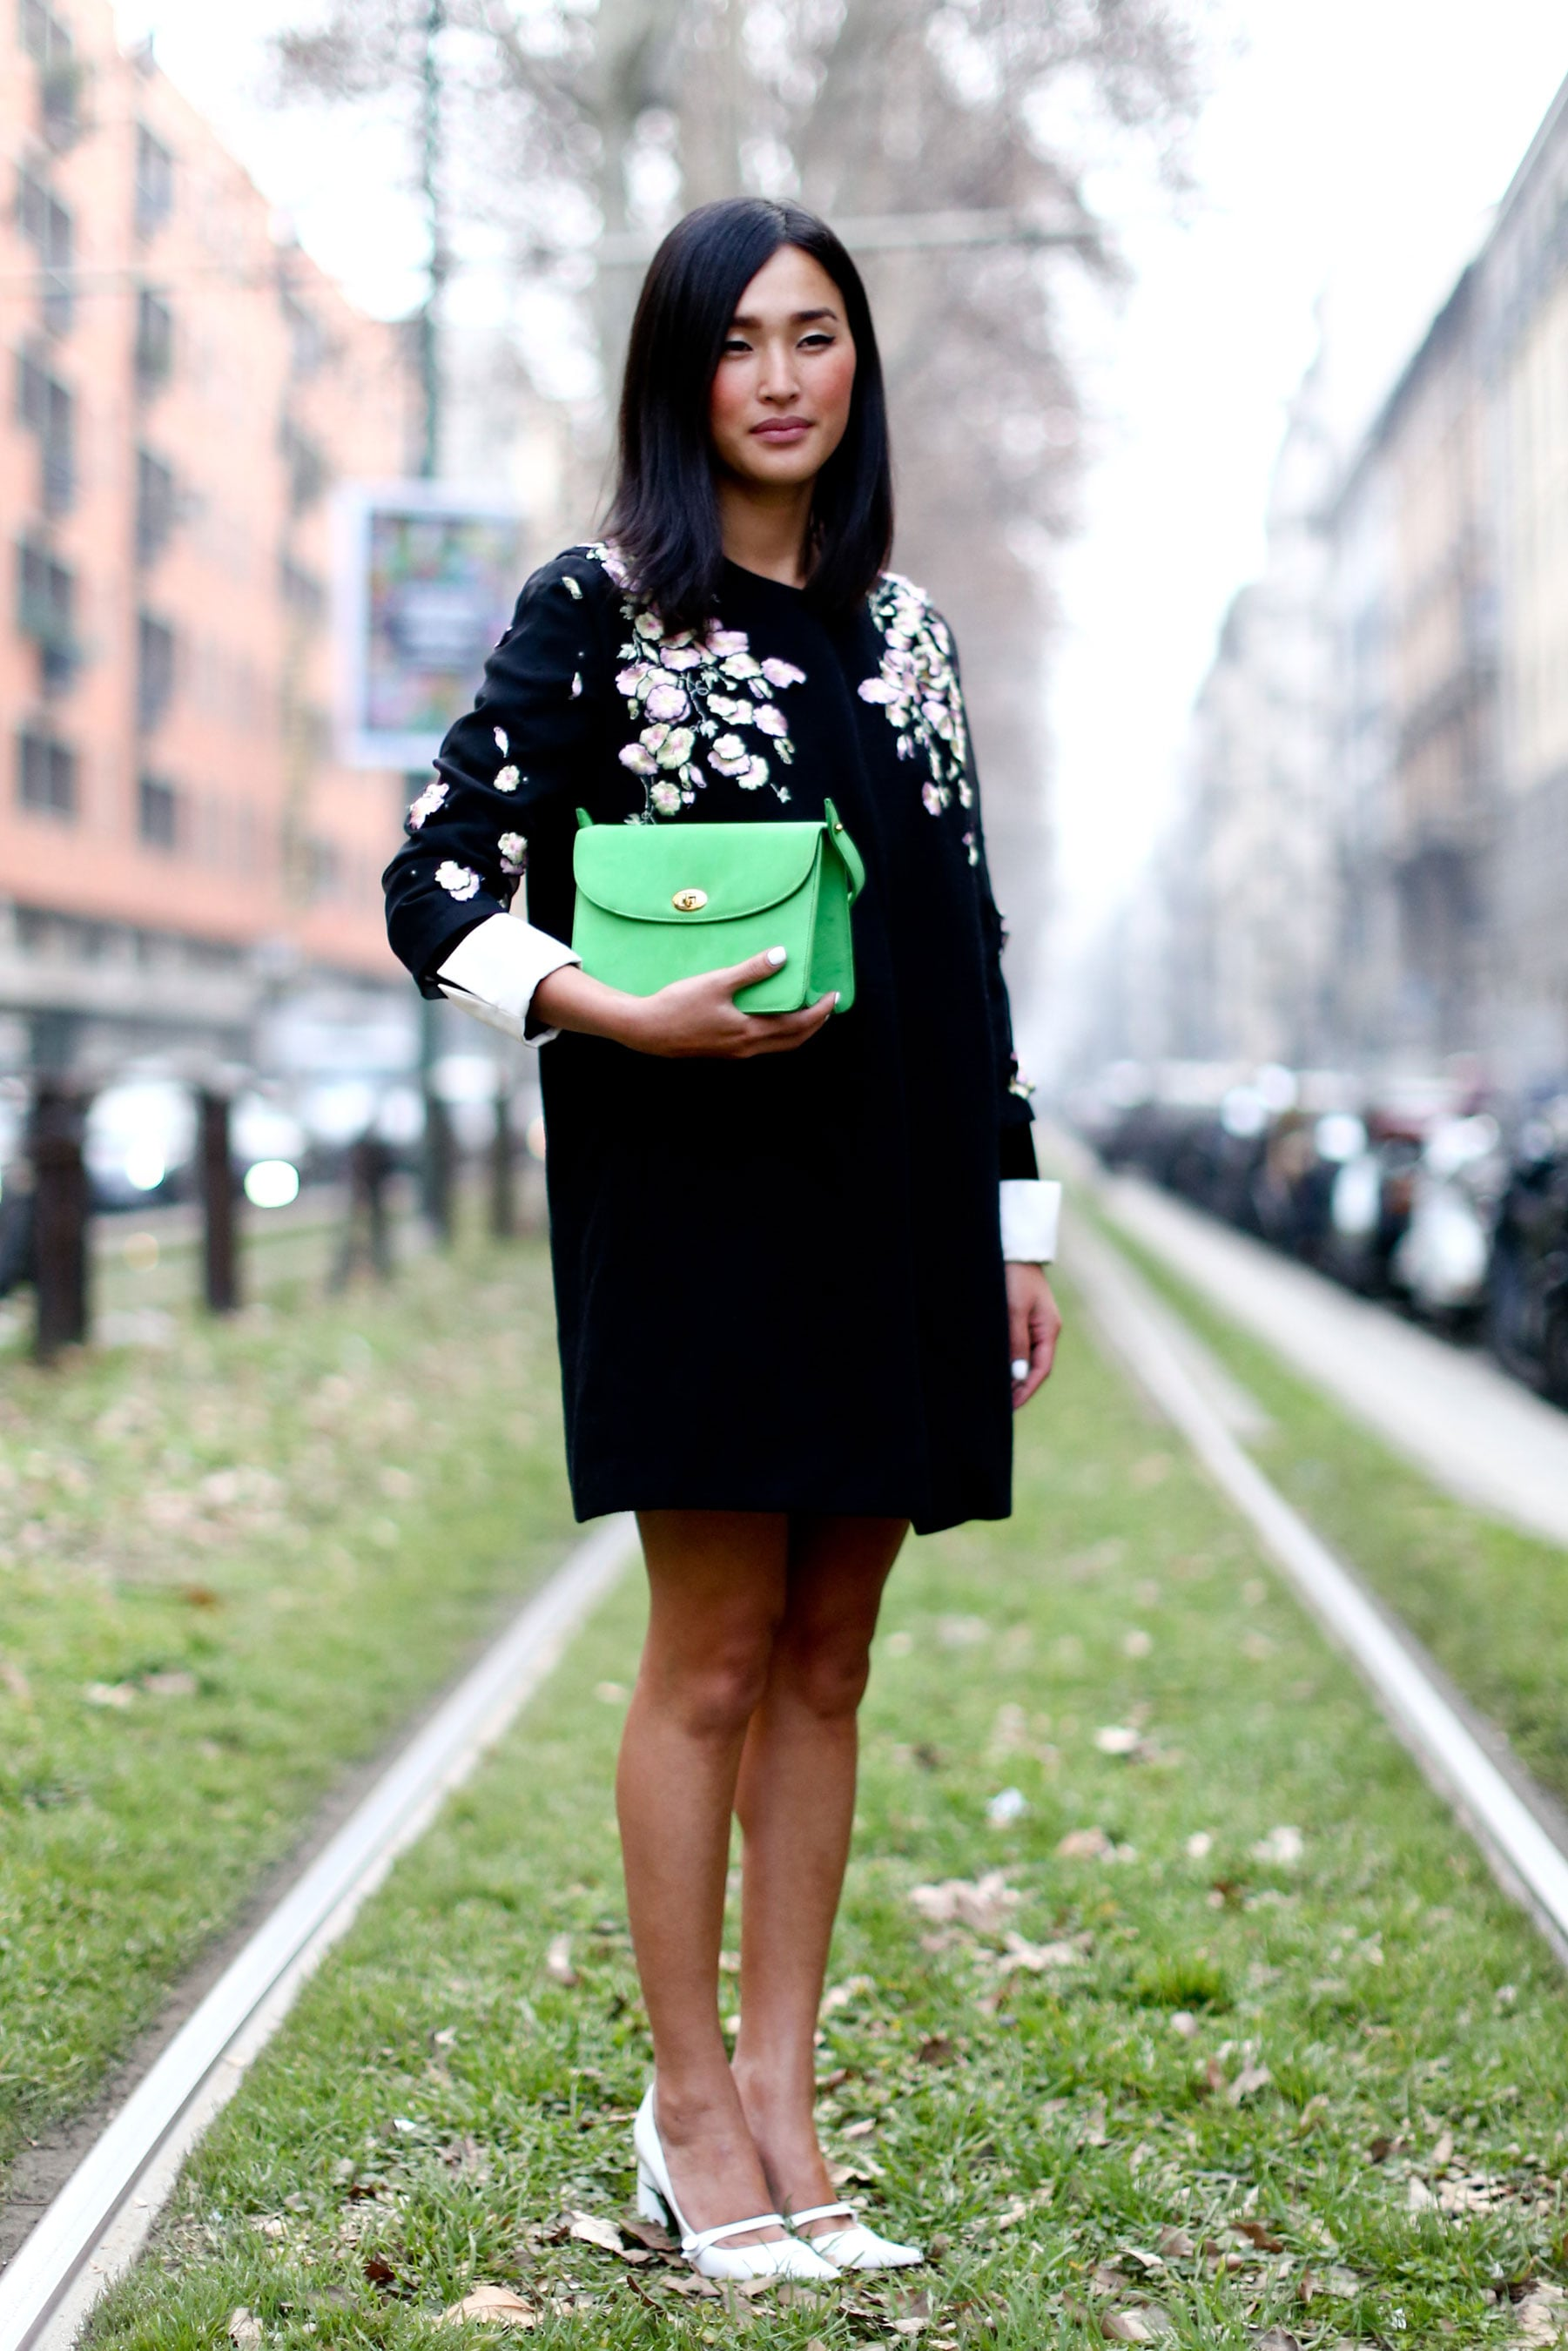 We adore the perfectly modern, minimalist take on ladylike with a boxy, bright satchel and sleek low-heeled white pumps.